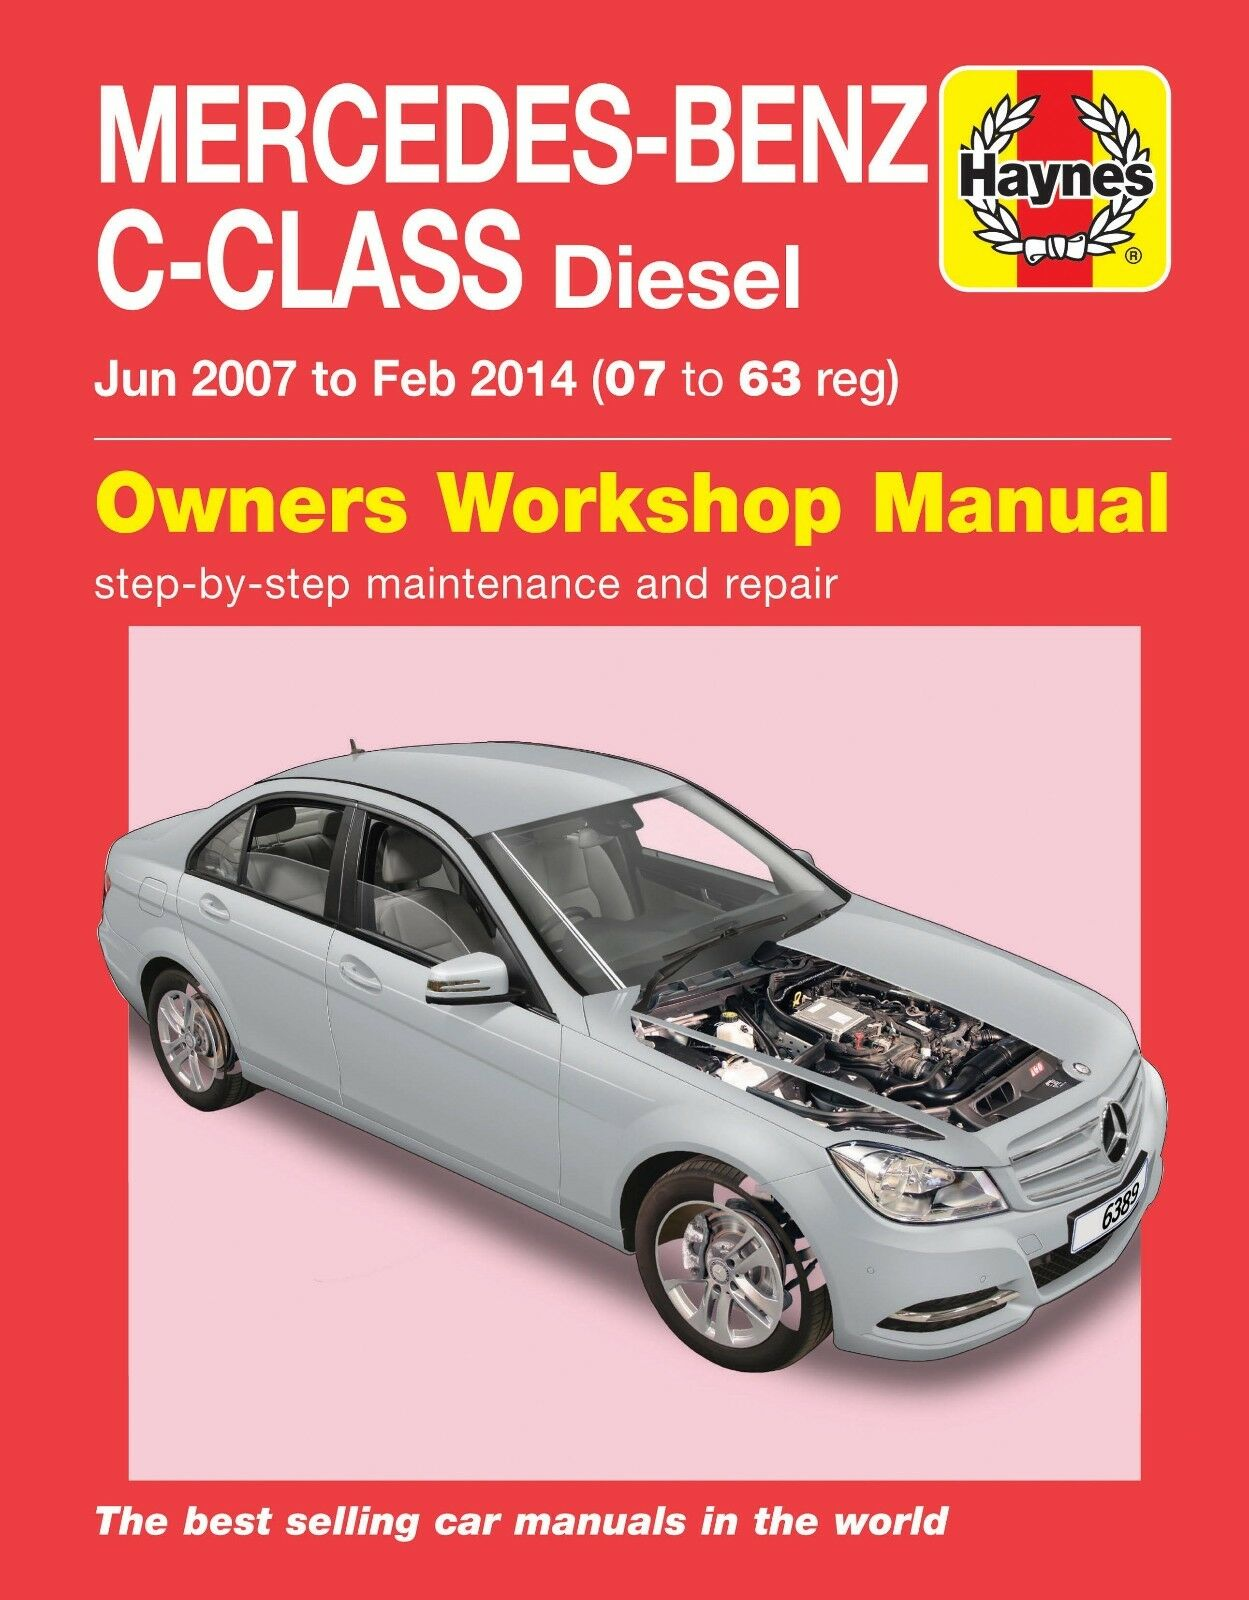 Mercedes Benz C Class Repair Manual Haynes Manual Workshop Manual 2007-2014  1 of 1 See More